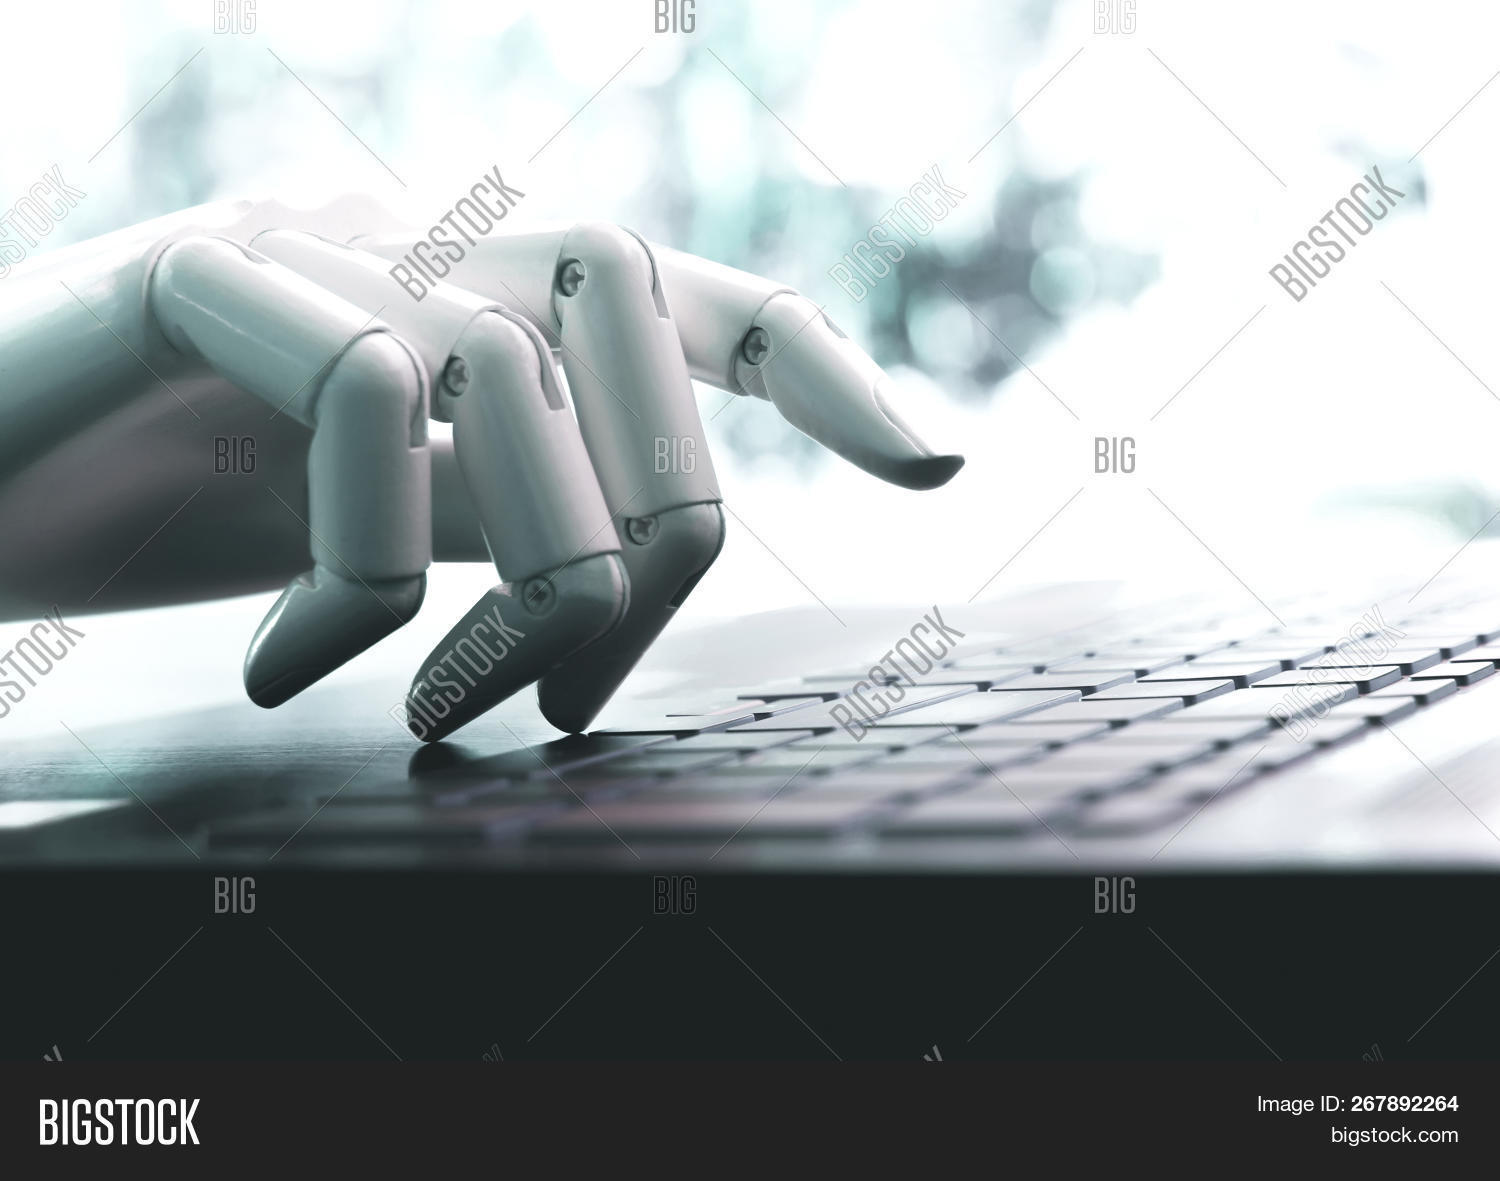 ai,android,arm,artificial,background,button,computer,concept,cyber,data,design,digital,electronic,enter,finger,hand,illustration,intelligence,isolated,key,keyboard,machine,modern,press,push,robot,robotic,screen,security,software,tablet,tech,technology,touch,typing,view,white,work,writing